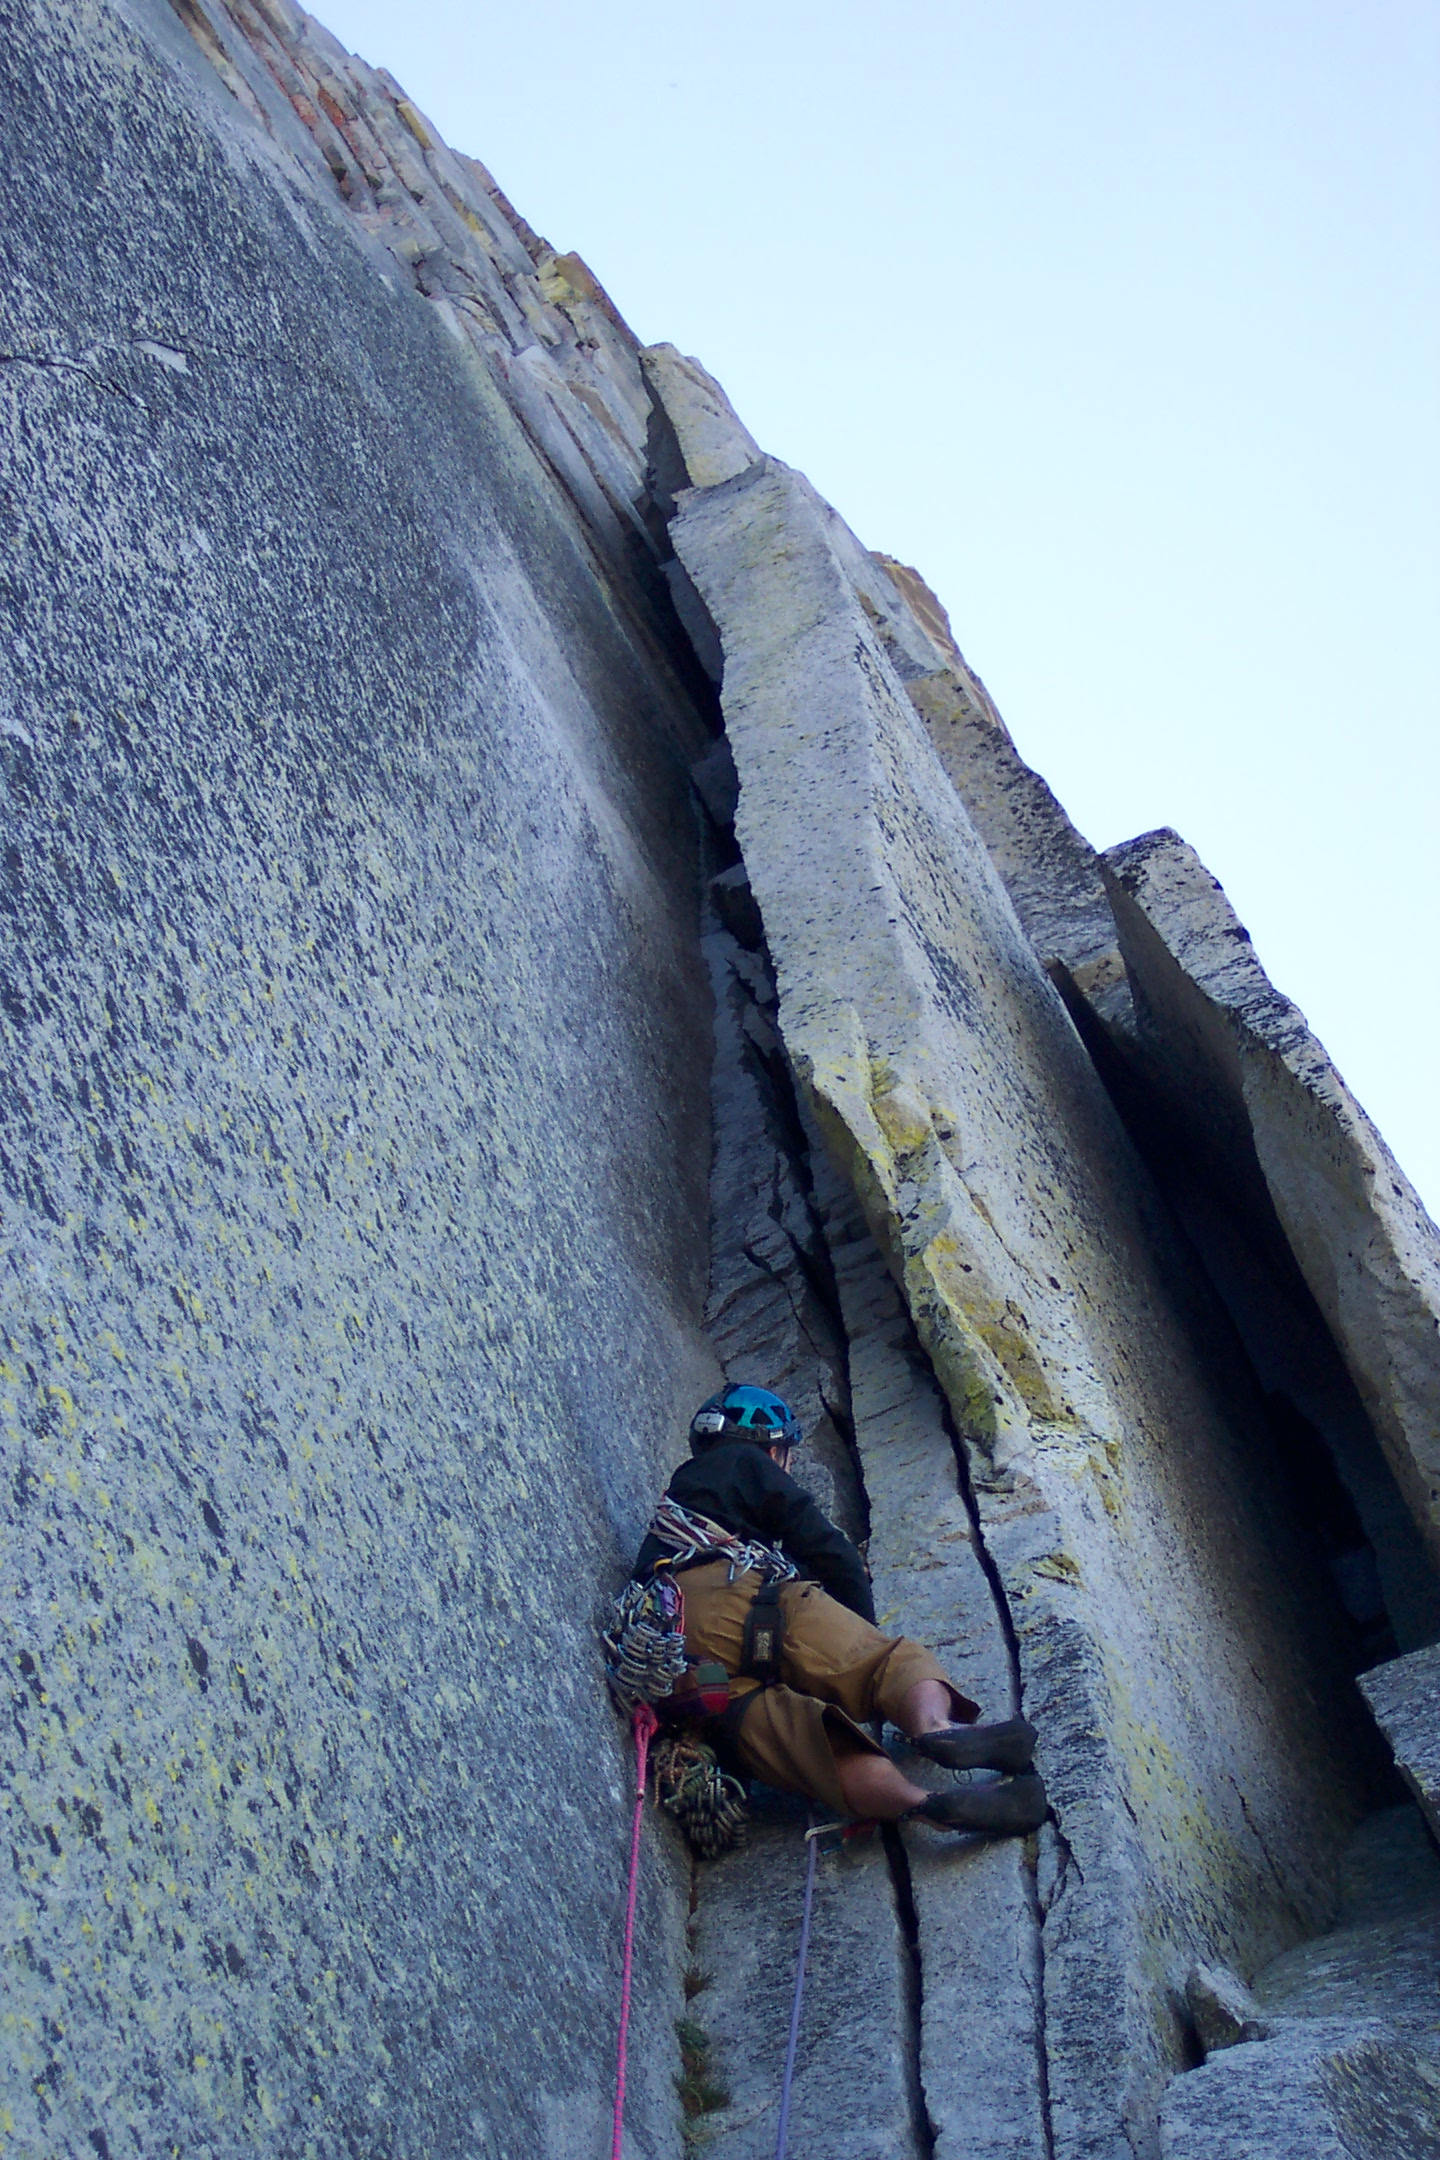 Mike getting into one of the chimneys on the Regular Route, Half Dome